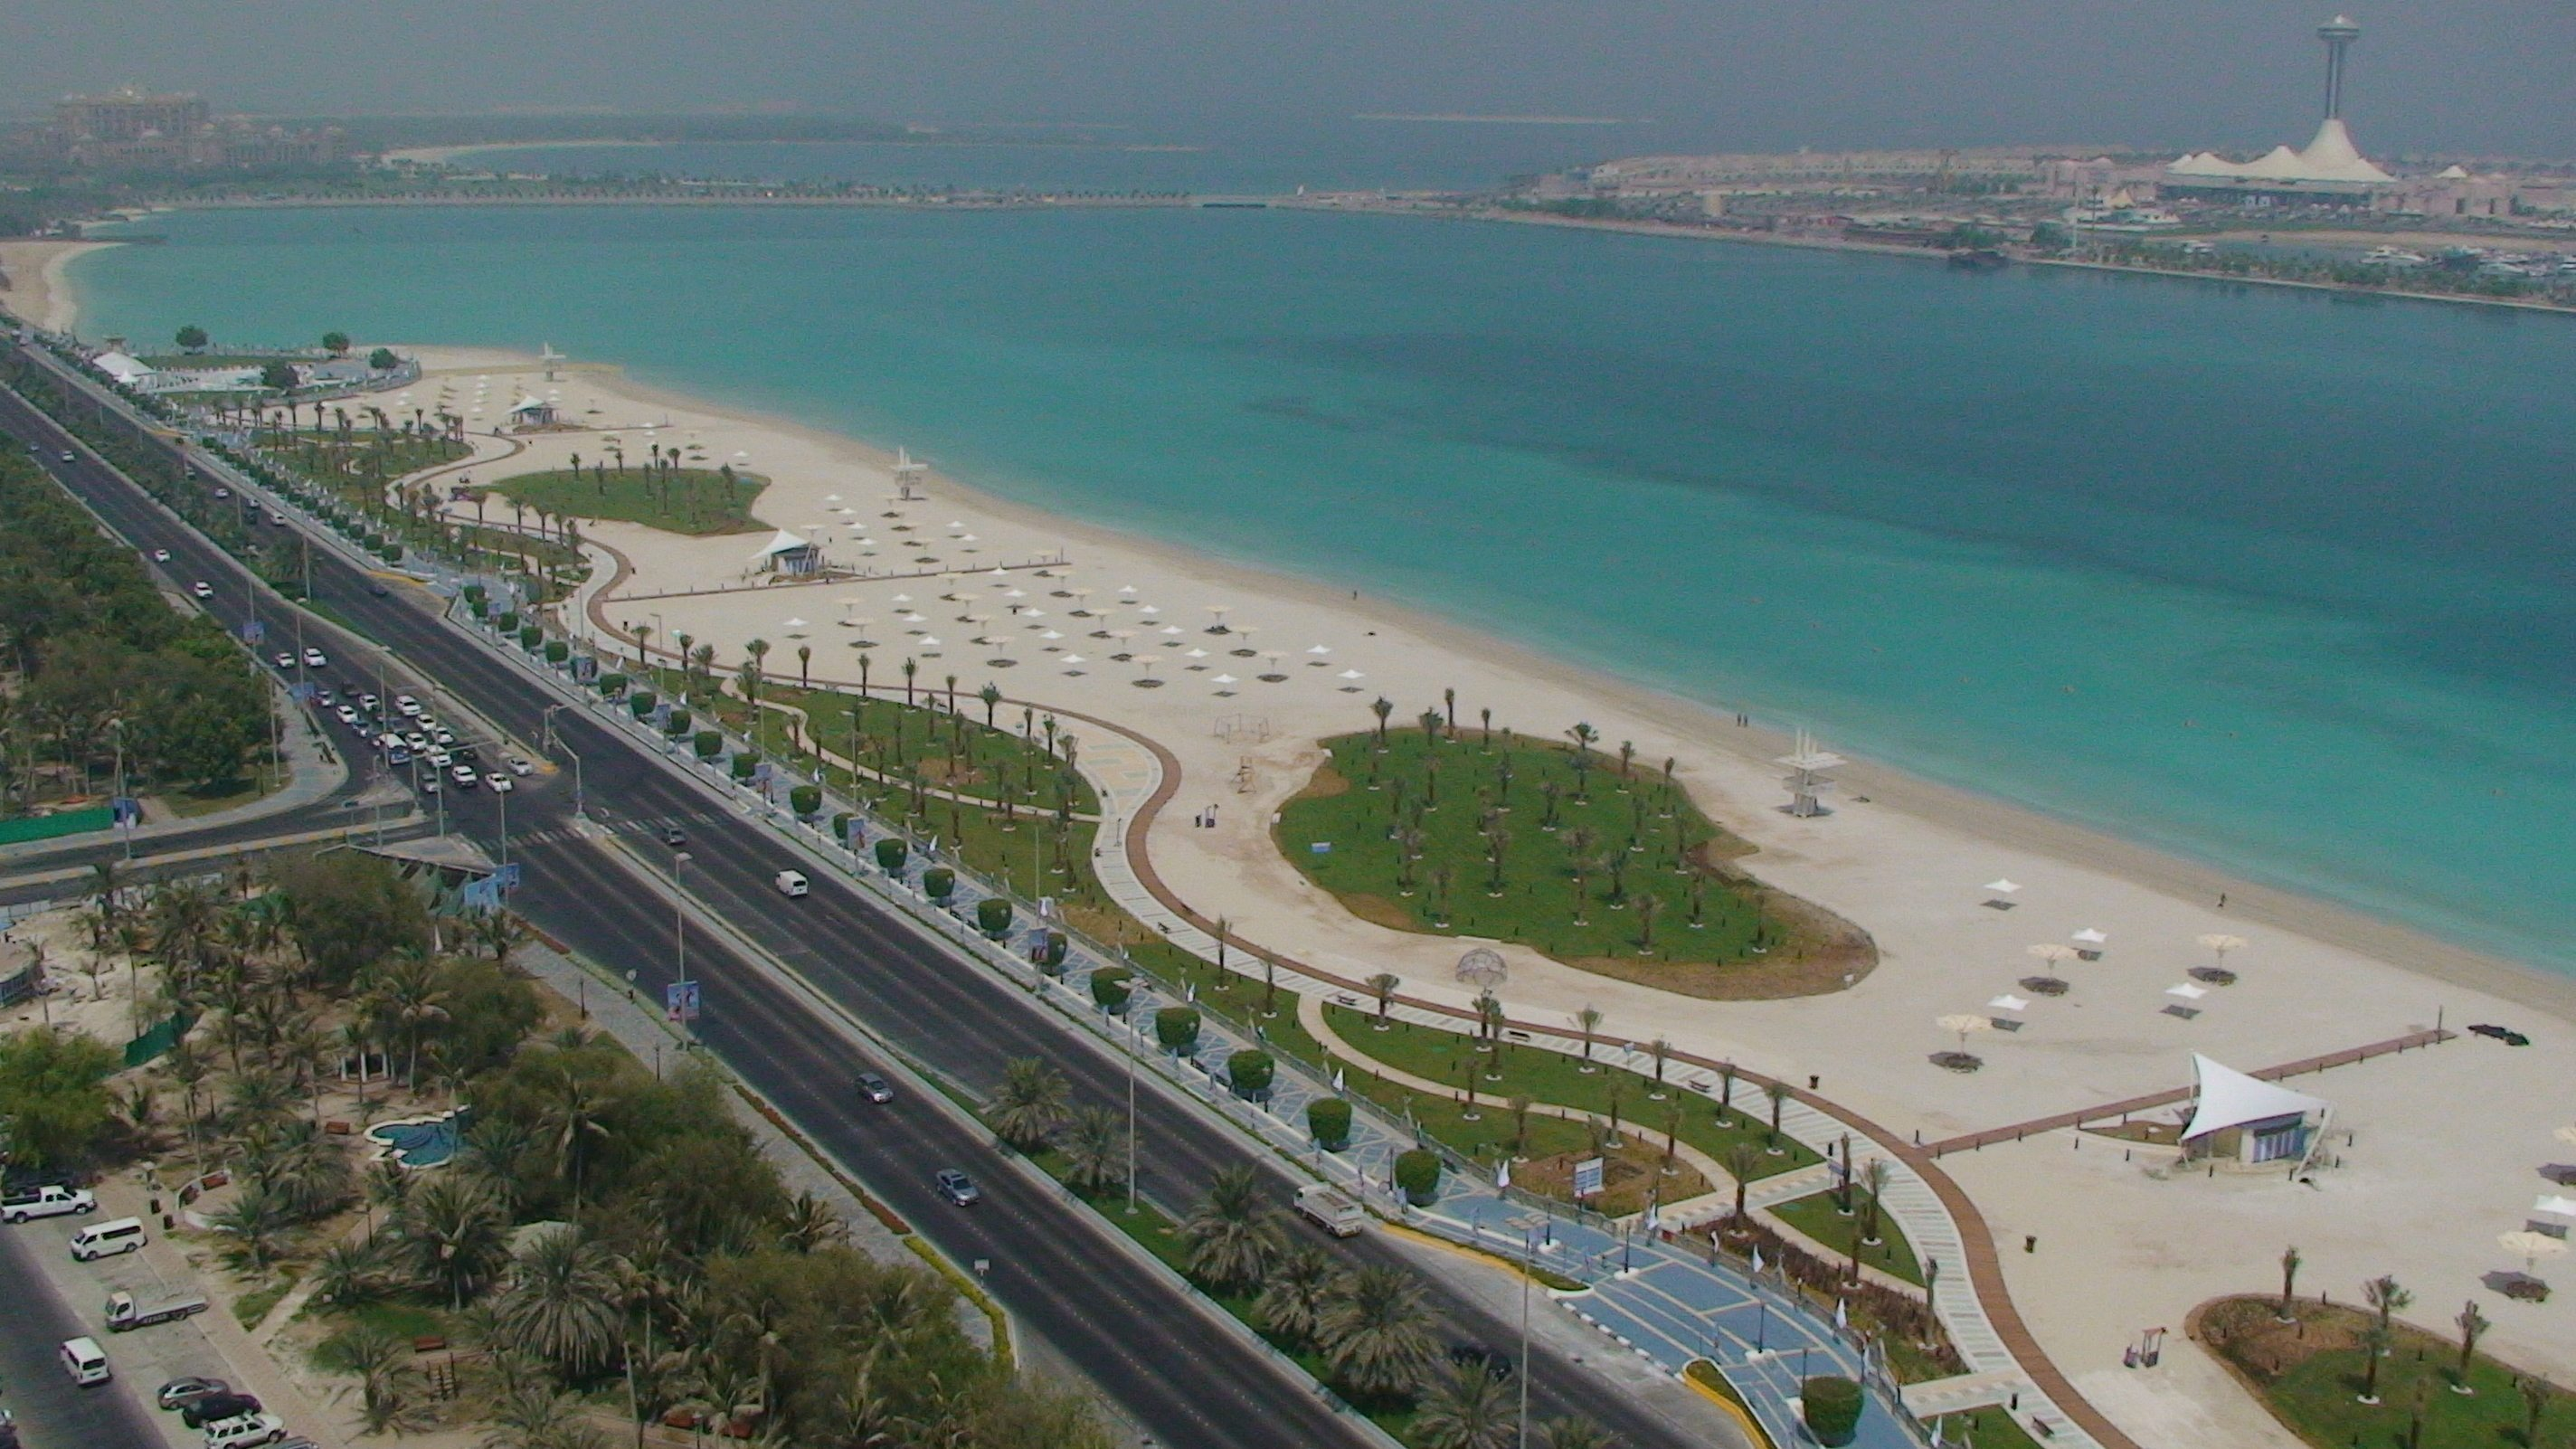 Top Tourist Attractions To Visit On Abu Dhabi Tour